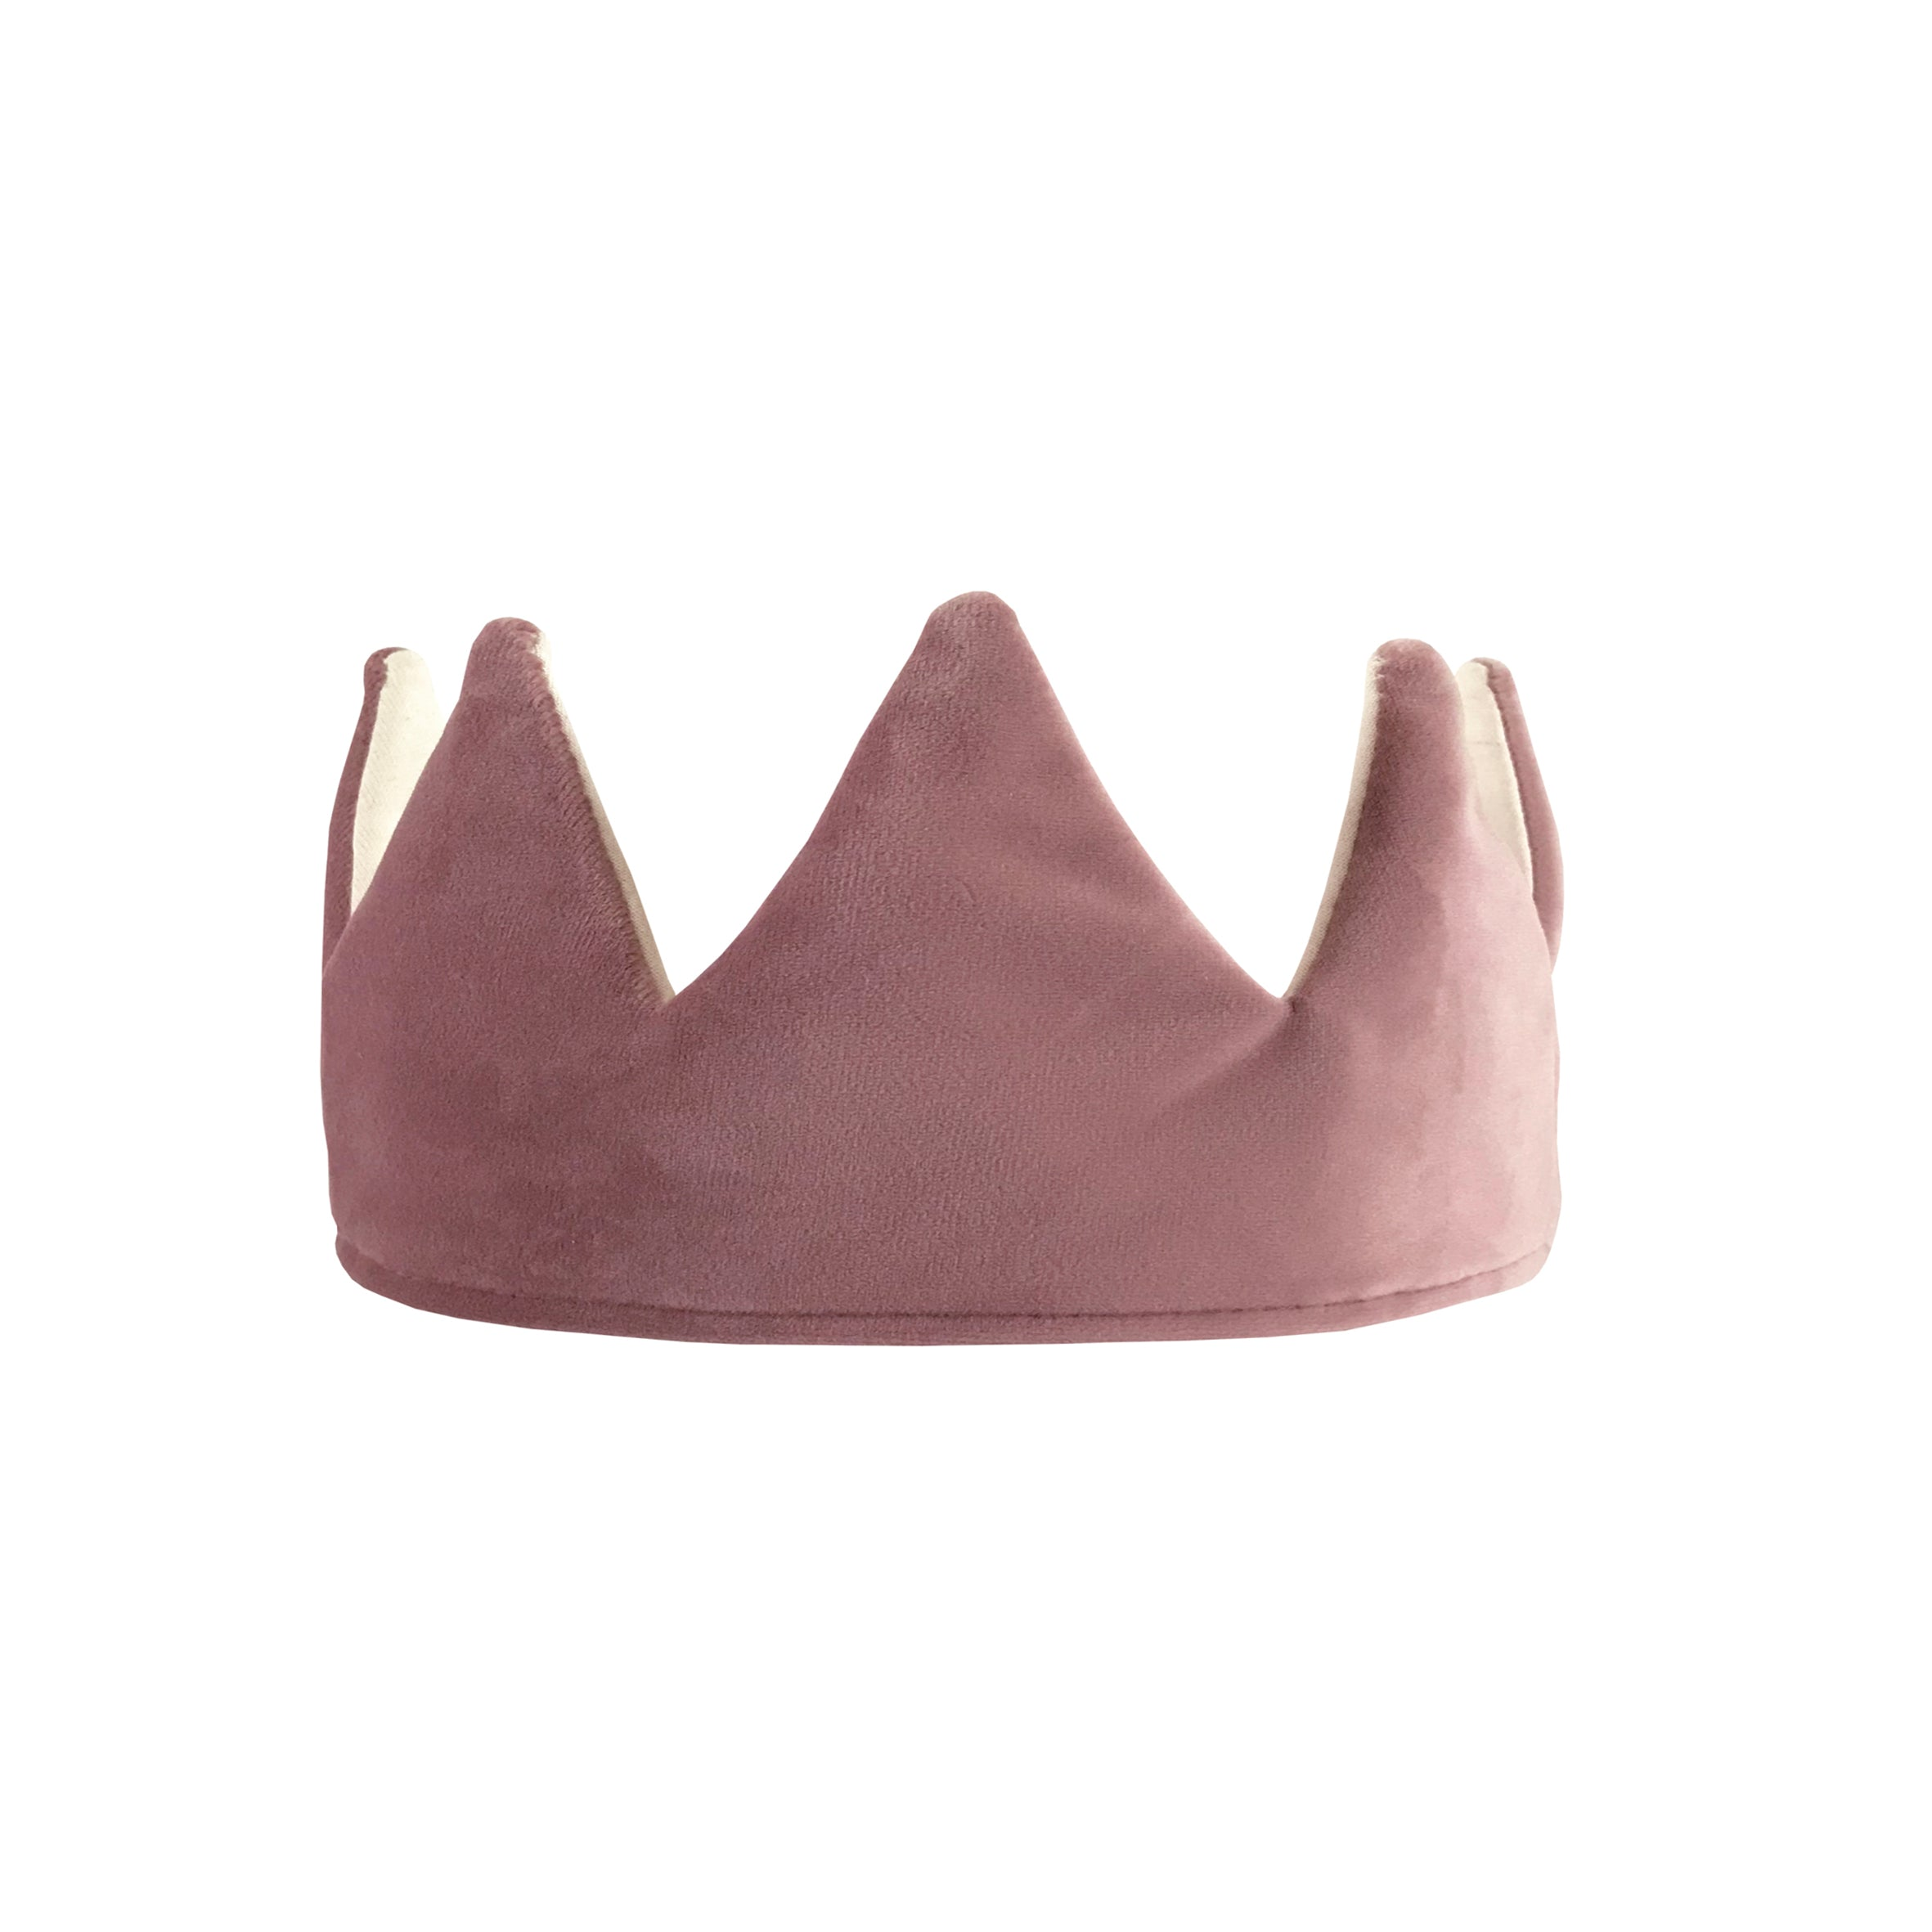 Fable Heart Toy Heather Crown £10 to fit your dollies and teddies